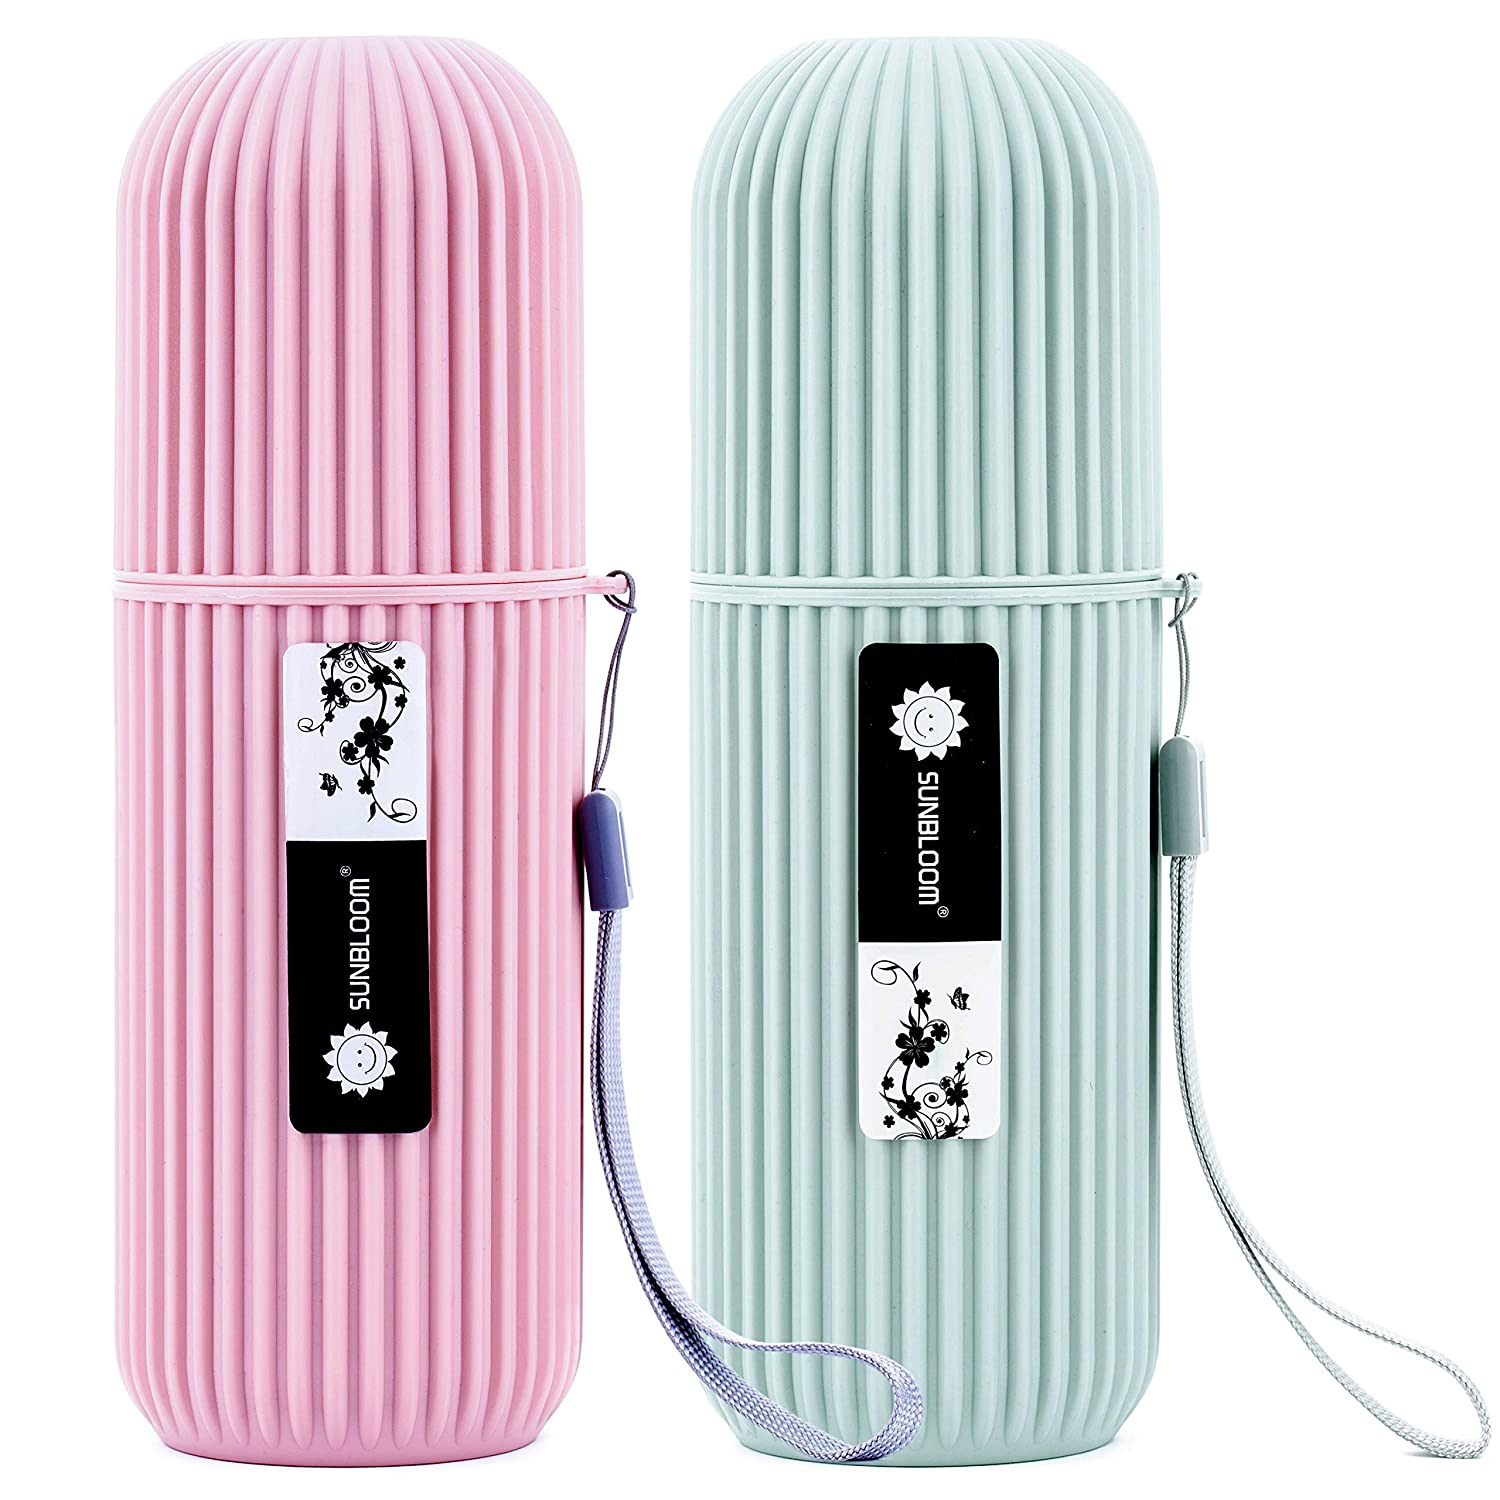 Travel toothbrush case, mouth wash cups, office supplies organizer, cosmetic holder. 2 pack of (Grey and Pink)